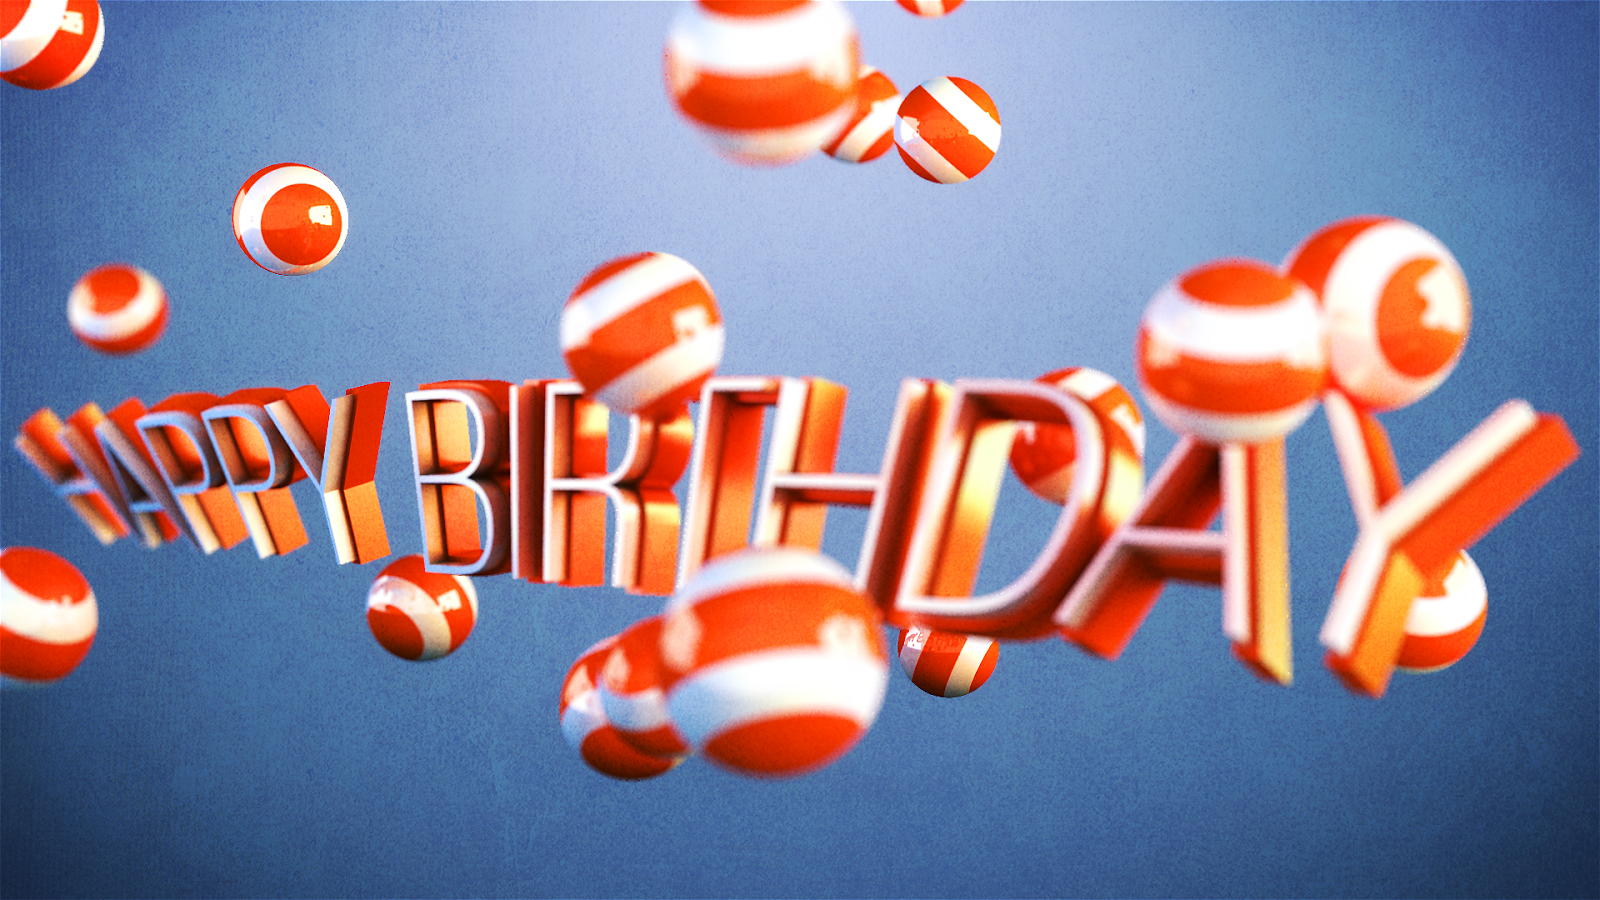 Happy-Birthday-candy-text-Background-for-kids-images.png